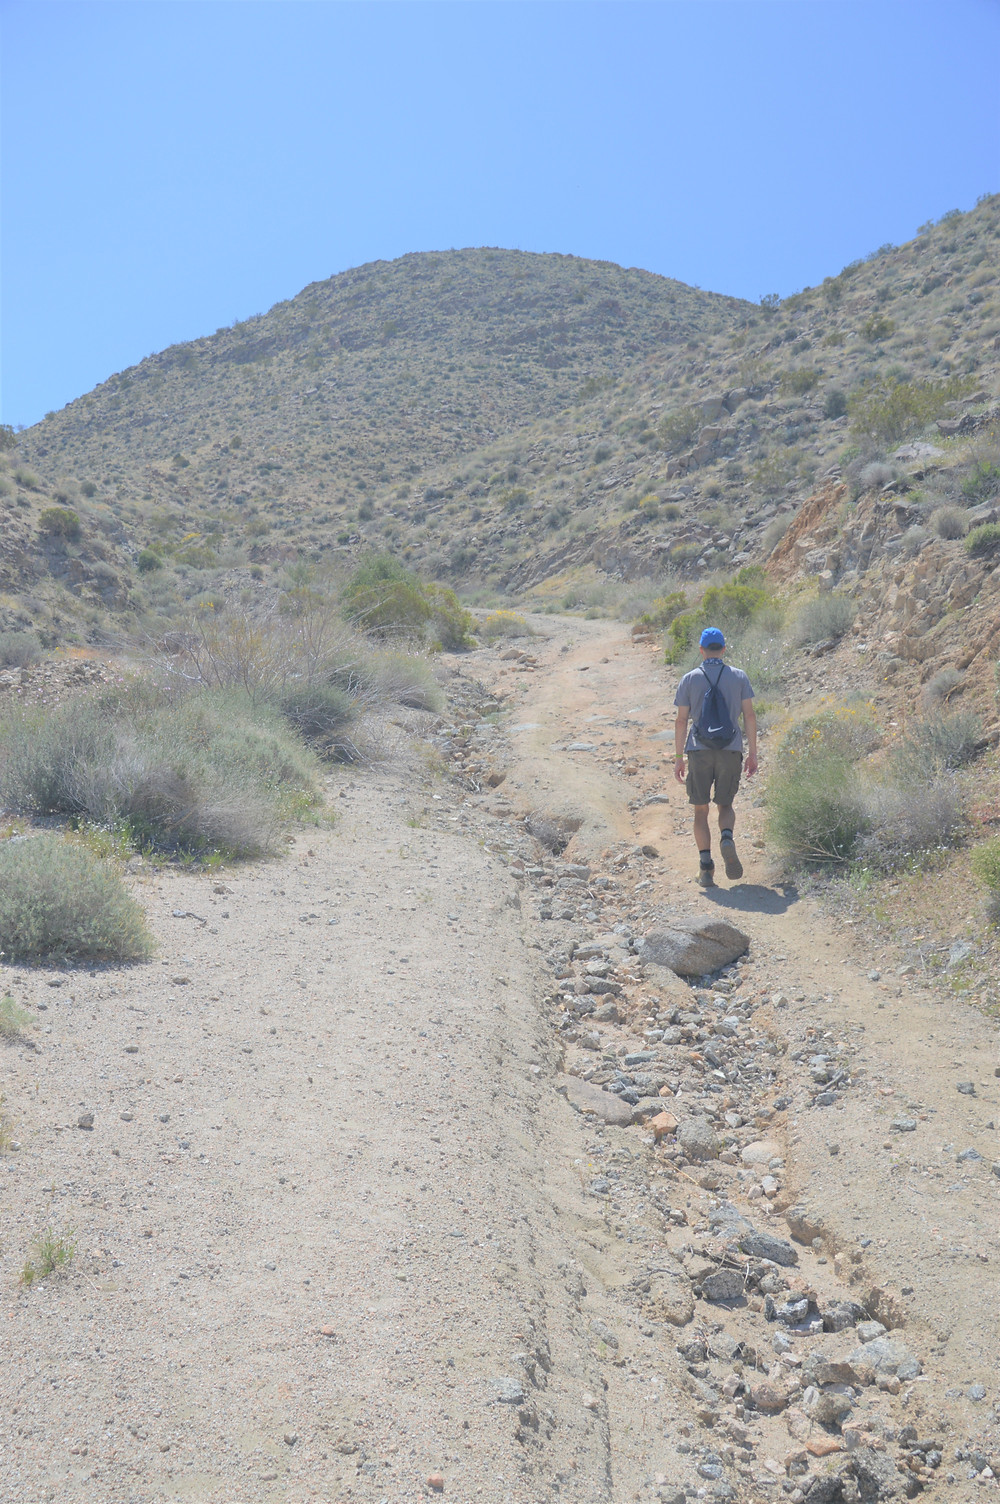 Hiking Dunn Road on the Cathedral Canyon Loop in the foothills of Santa Rosa Mountains